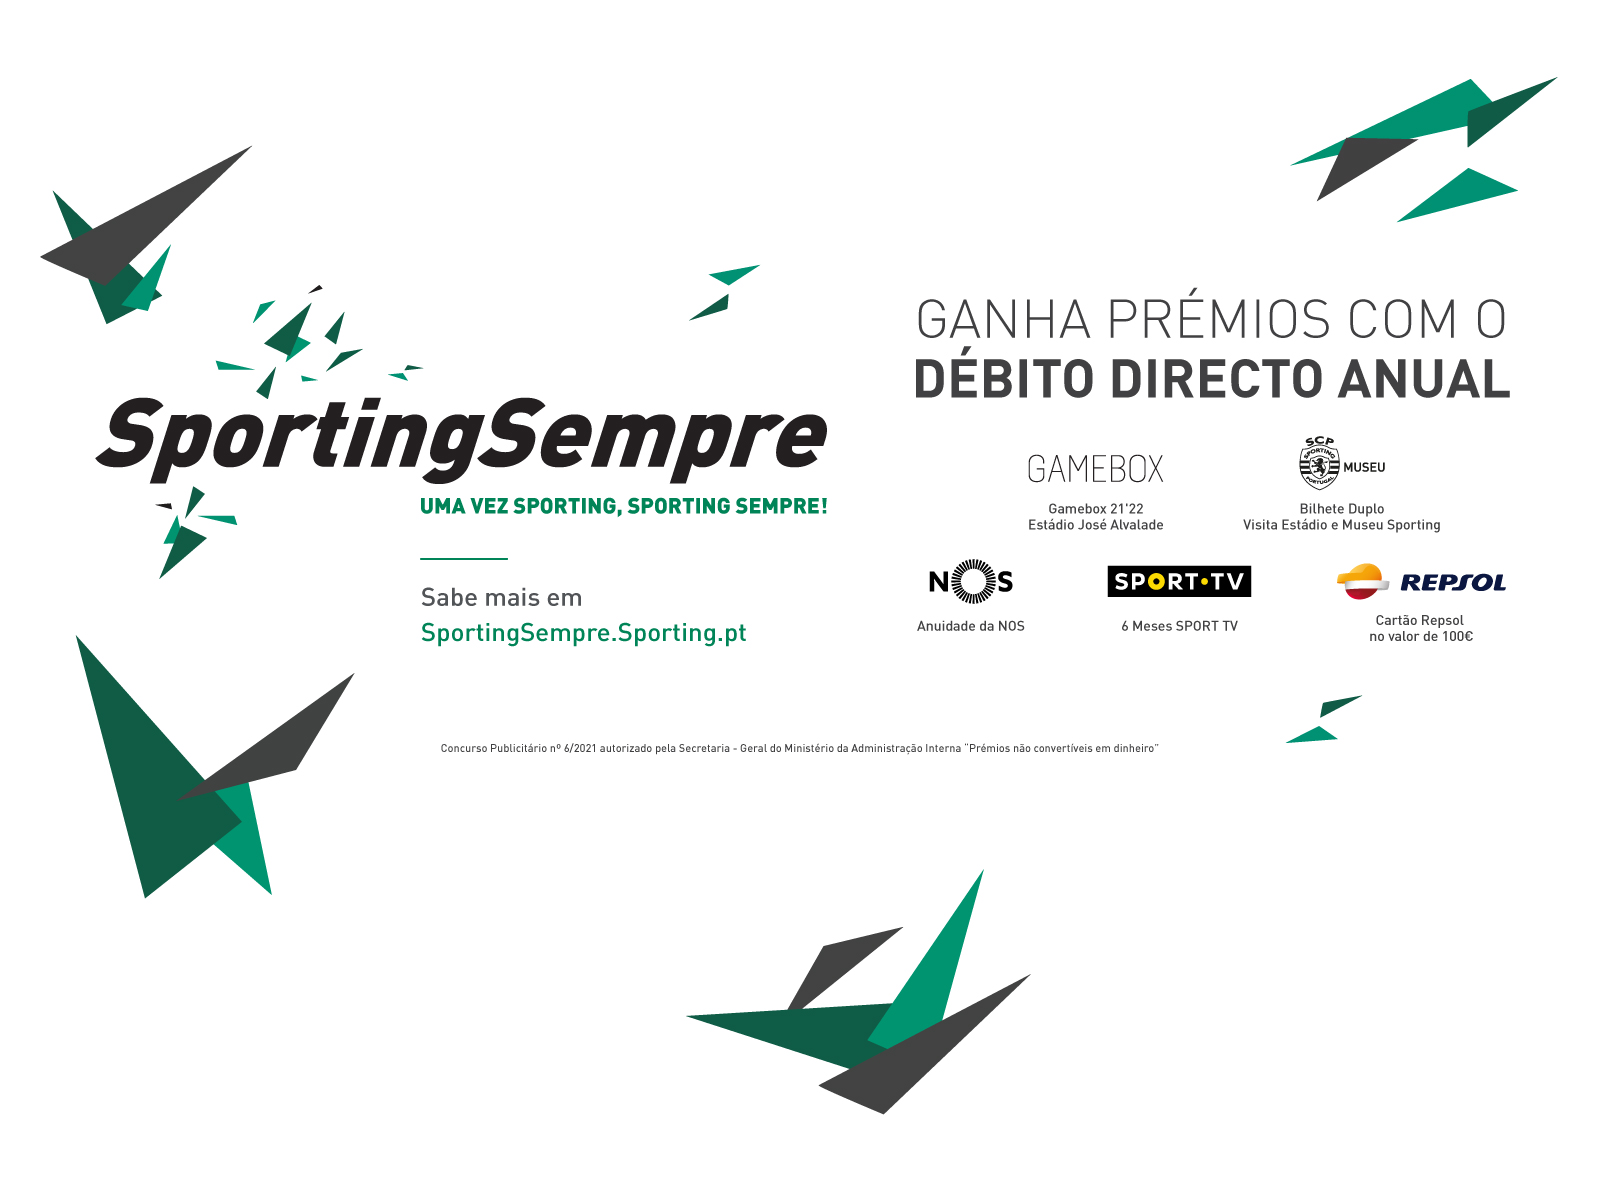 https://scpconteudos.pt/sites/default/files/revslider/image/BannerSite_SportingSempre.jpg